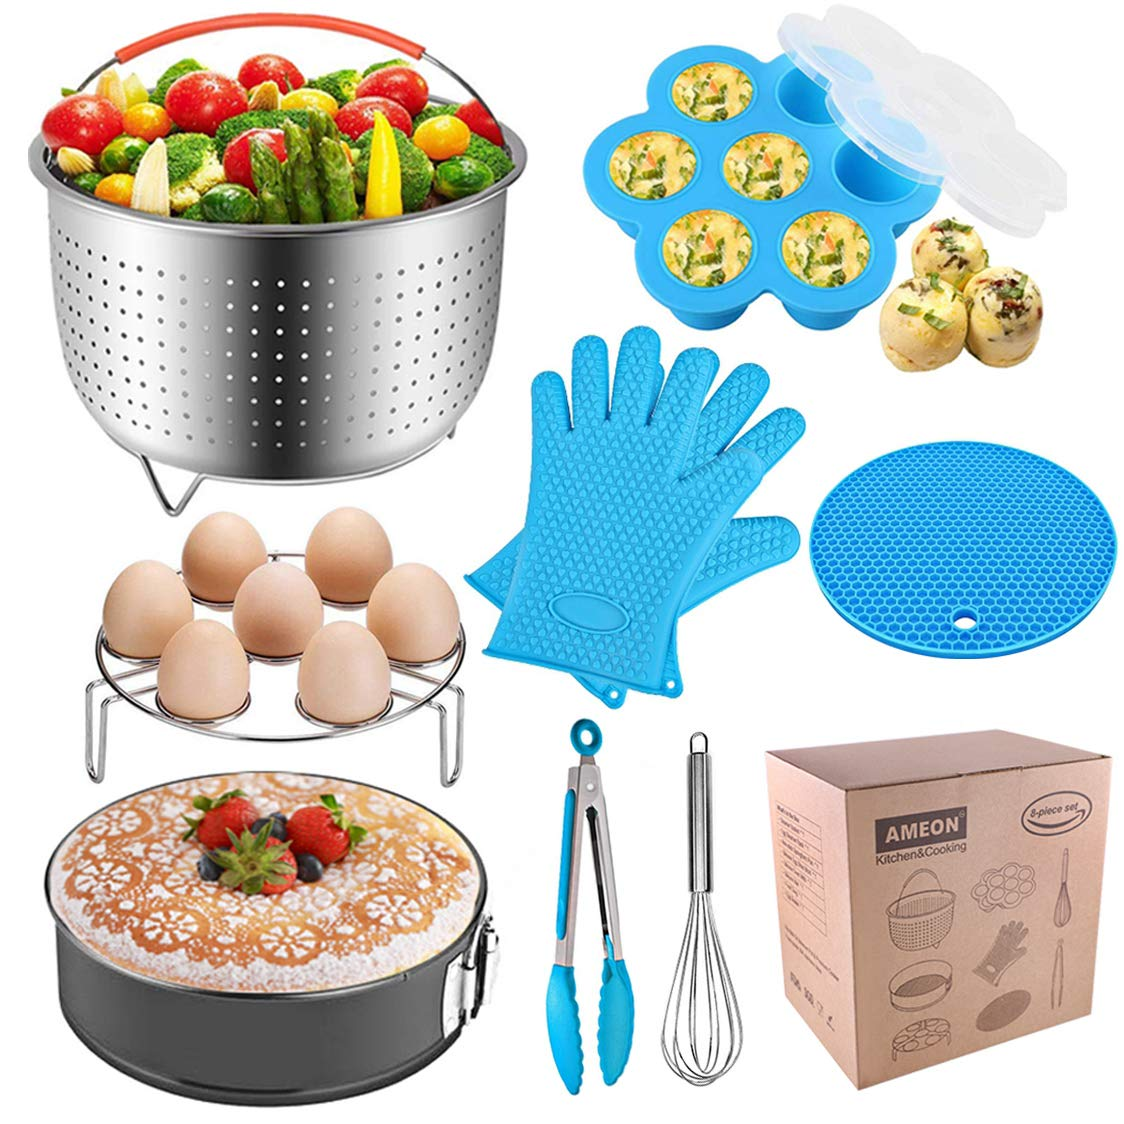 AMEON Accessories for Instant Pot 6, 8 Quart - Steamer Basket, Egg Rack, Springform Pan, Egg Bites Mold, Egg Beater, Pot Mitts, Silicone Mat and Food Tong for Insta Pot, Pressure Cooker, Rice Cooker by AMEON (Image #1)